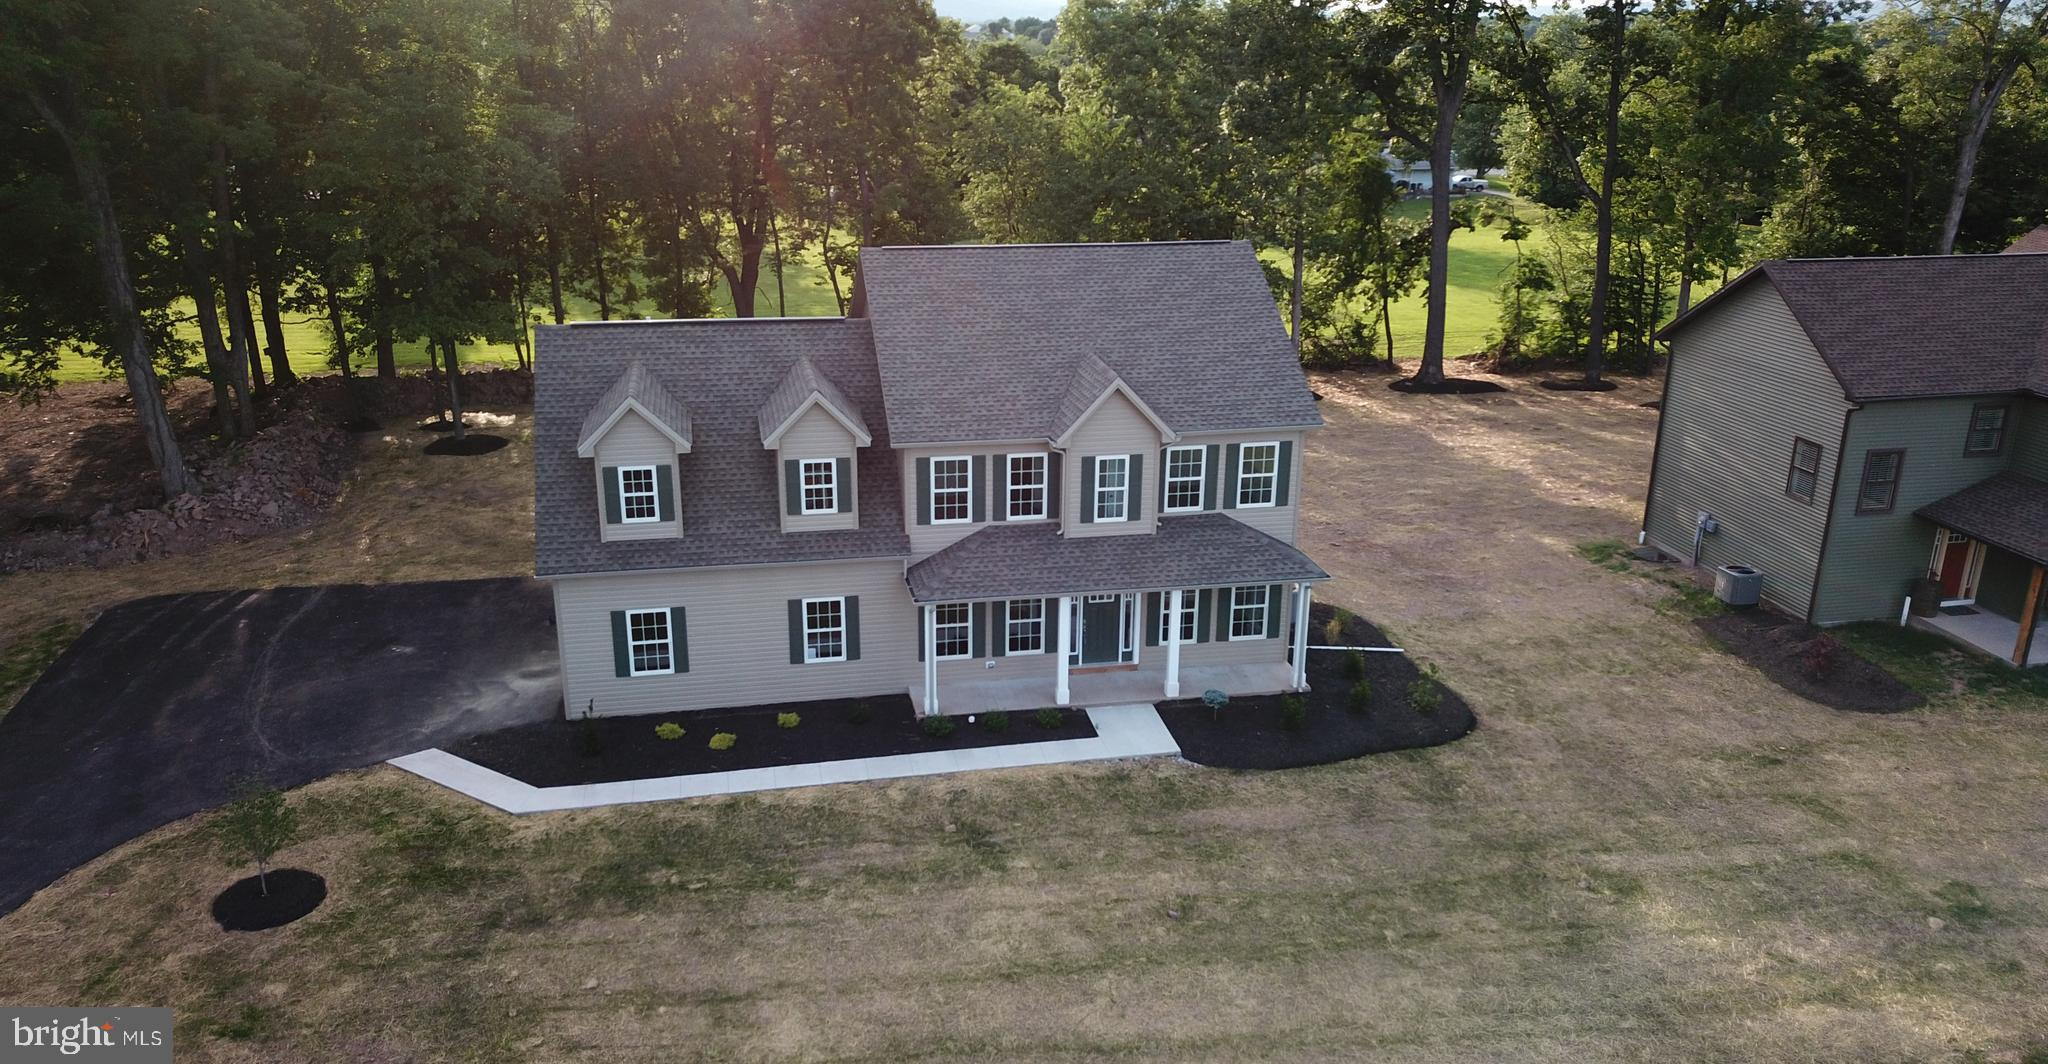 693 MIDWAY ROAD, YORK HAVEN, PA 17370